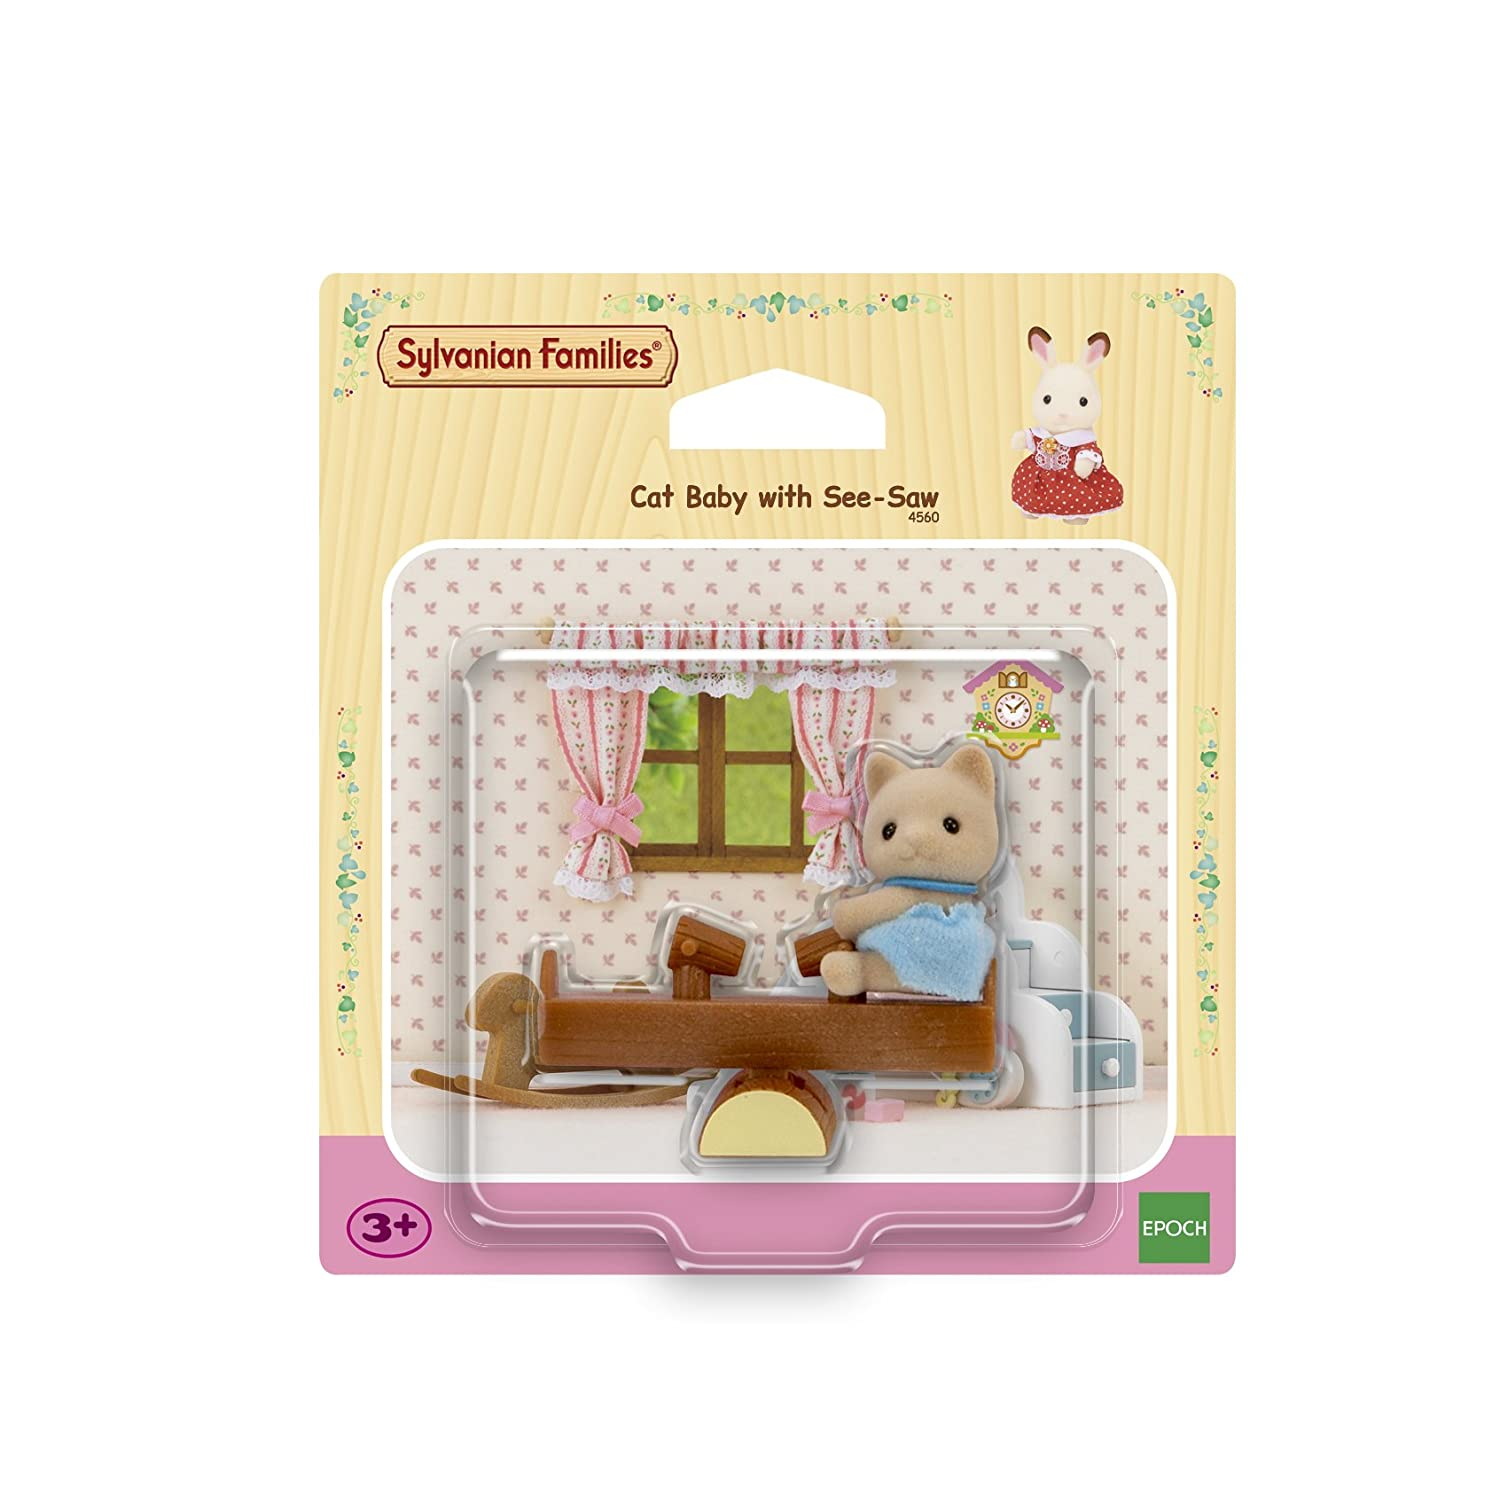 Sylvanian Families 4560 Cat Baby Toy with See-Saw Epoch